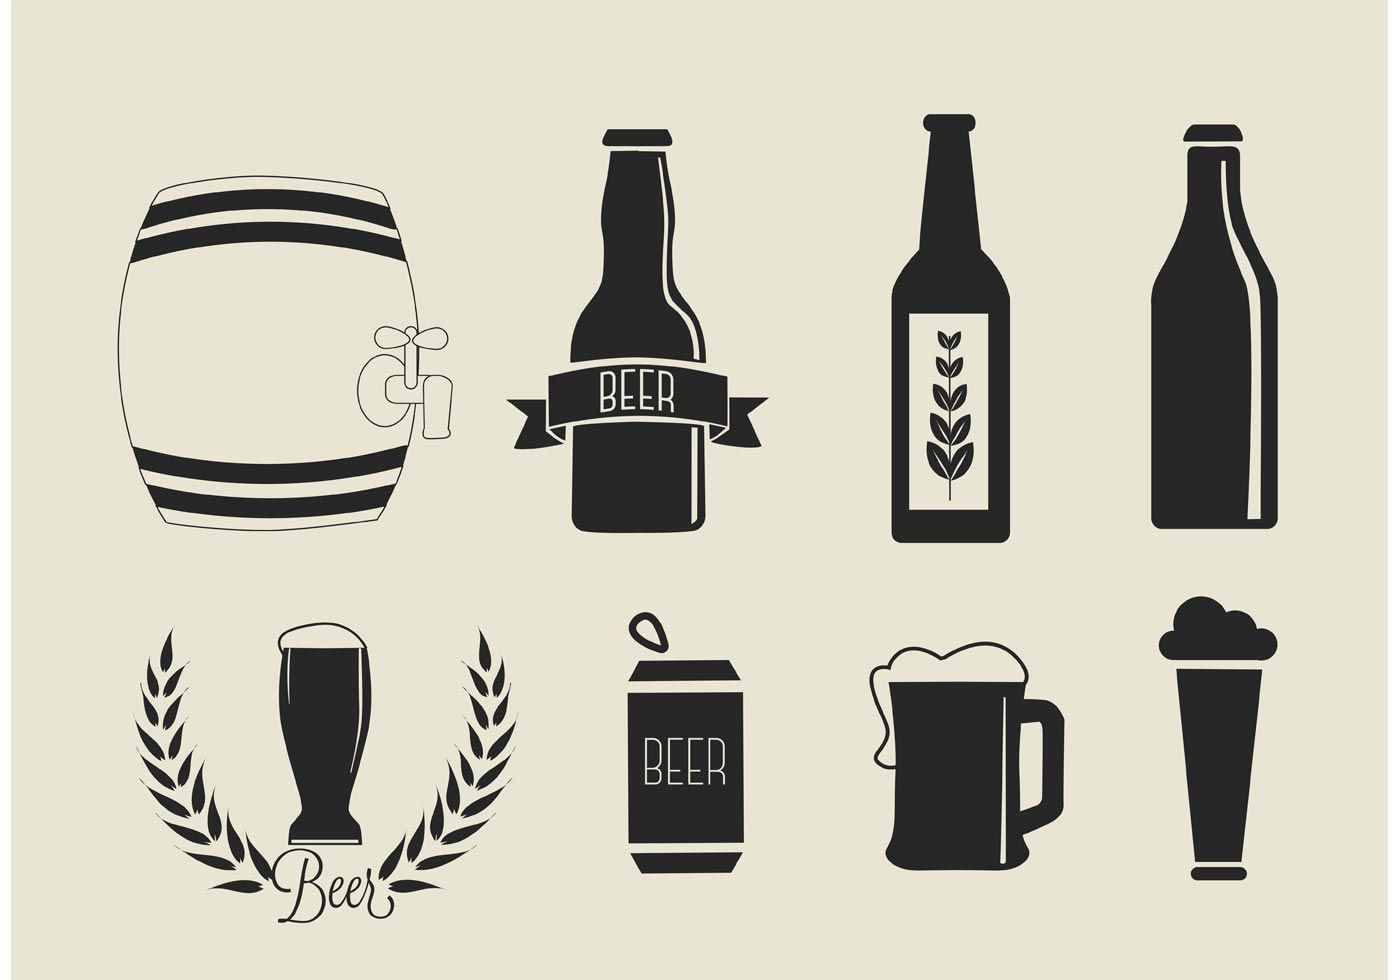 Free-vector-beer-icons-set | Party party party! in 2018 | Pinterest ...